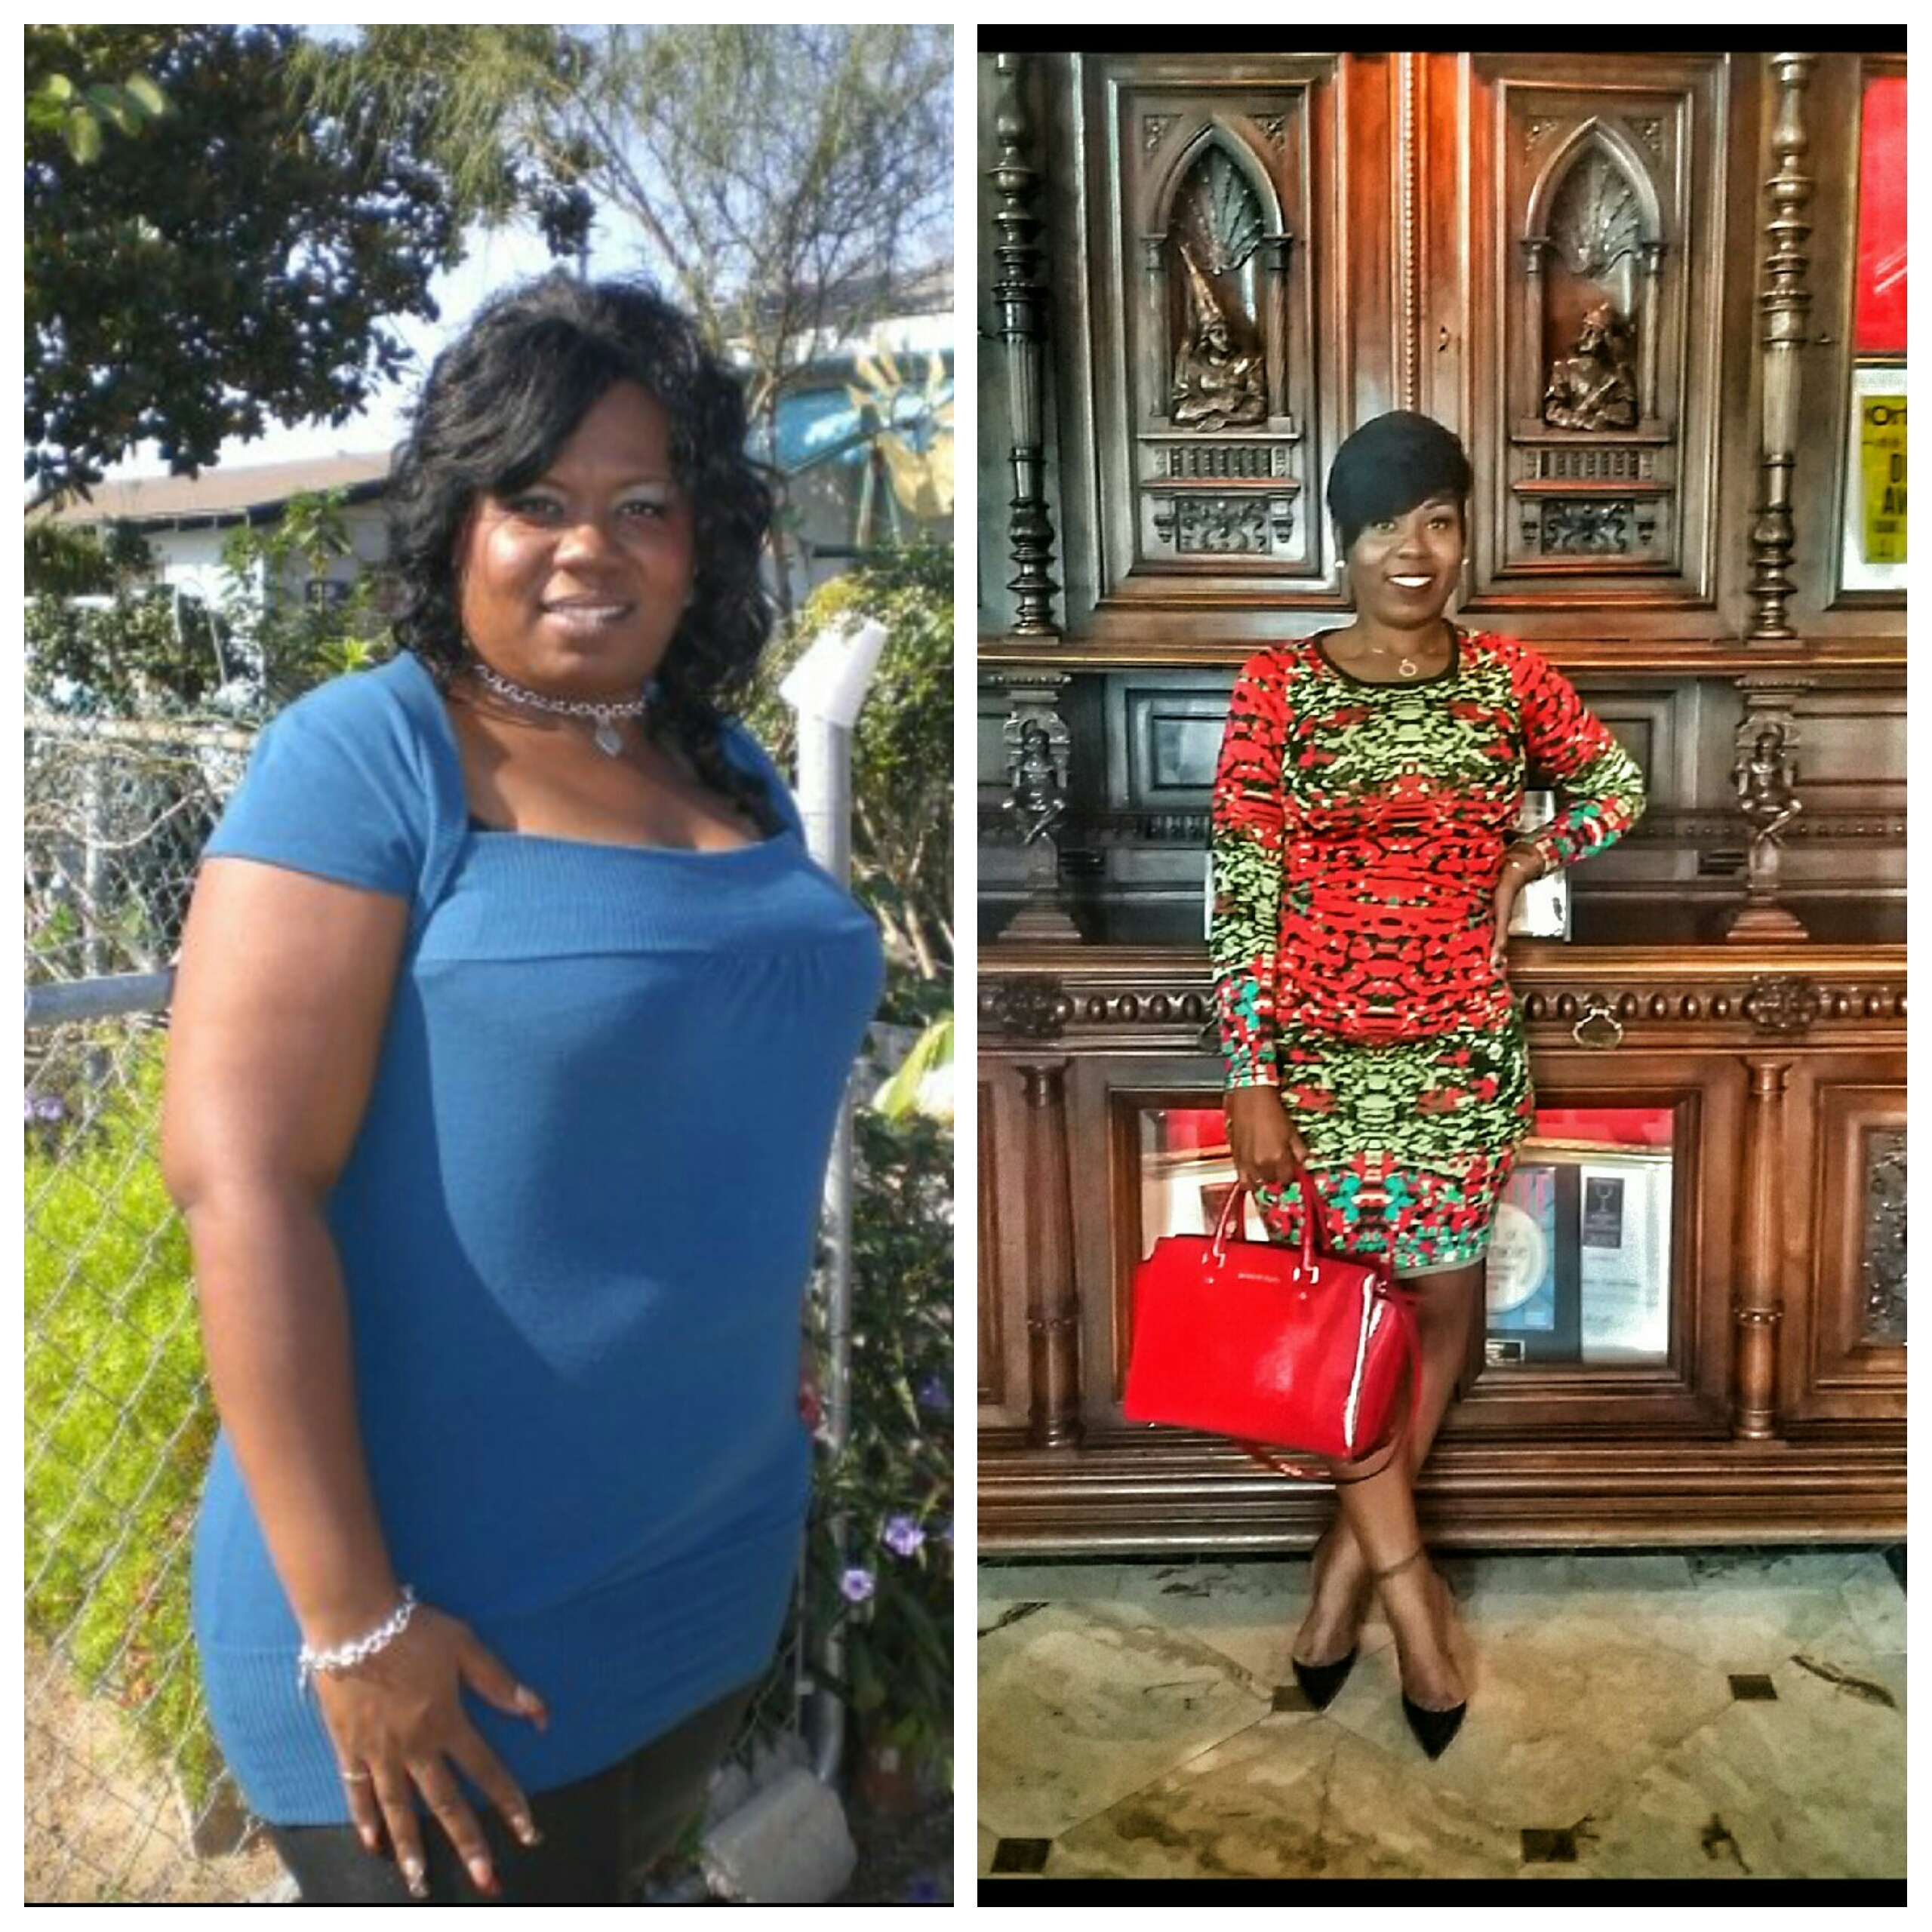 Great success story! Read before and after fitness transformation stories from women and men who hit weight loss goals and got THAT BODY with training and meal prep. Find inspiration, motivation, and workout tips | 113 Pounds Lost:  The Weight is Over Celebrating the new  Me!